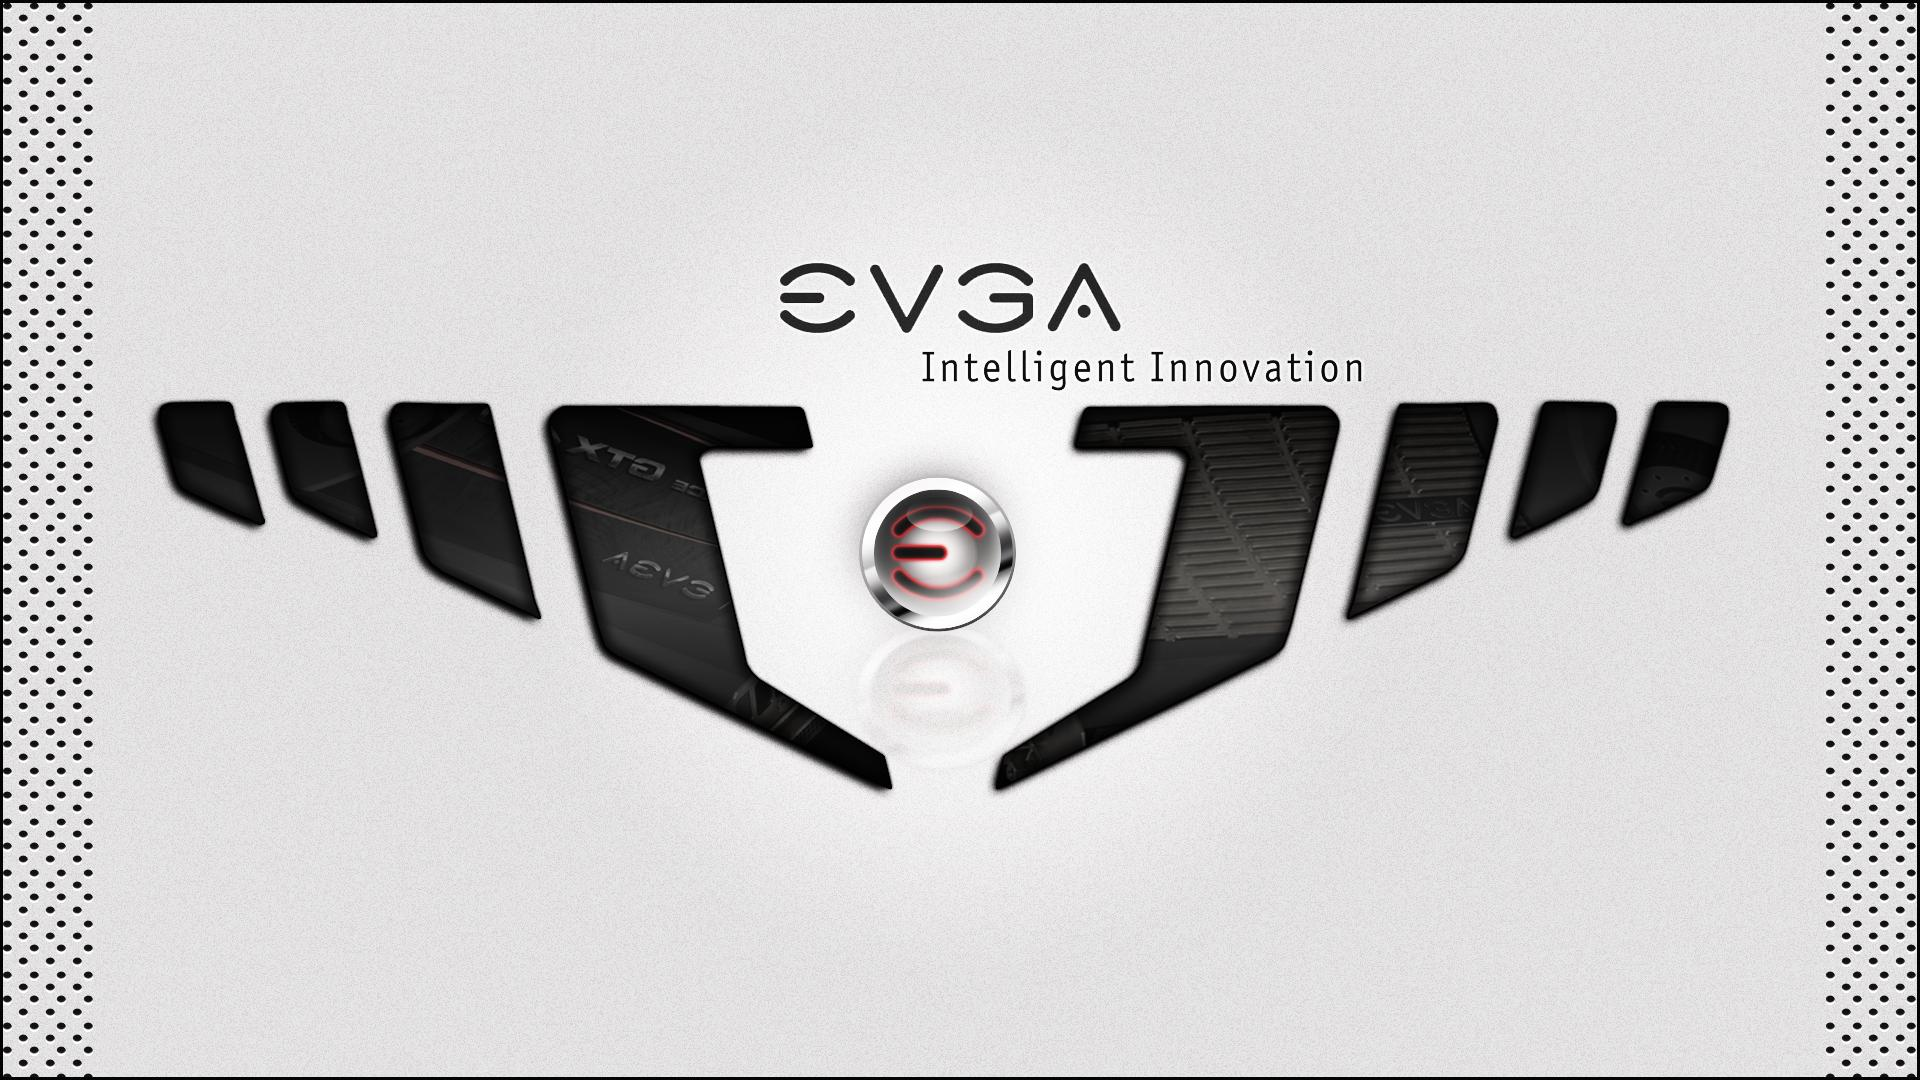 wallpaper.wiki-Free-Pictures-Evga-HD-PIC-WPB006020